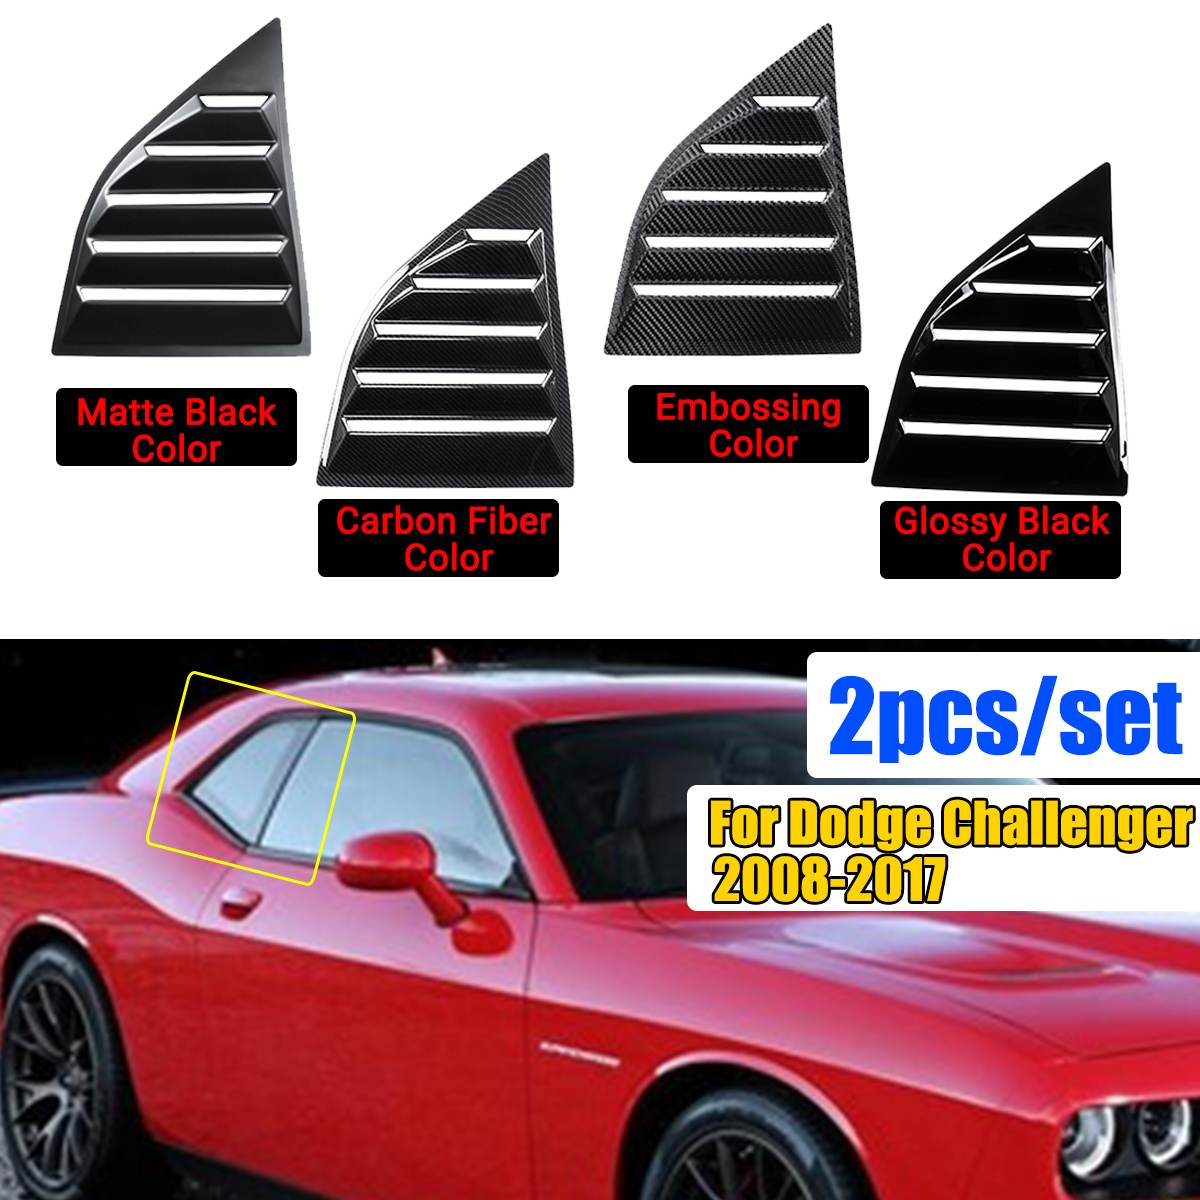 1 Pair ABS Black Carbon Fiber Color Window Scoops Louver Side Vent Window Covers For Dodge Challenger XE 2008-2017